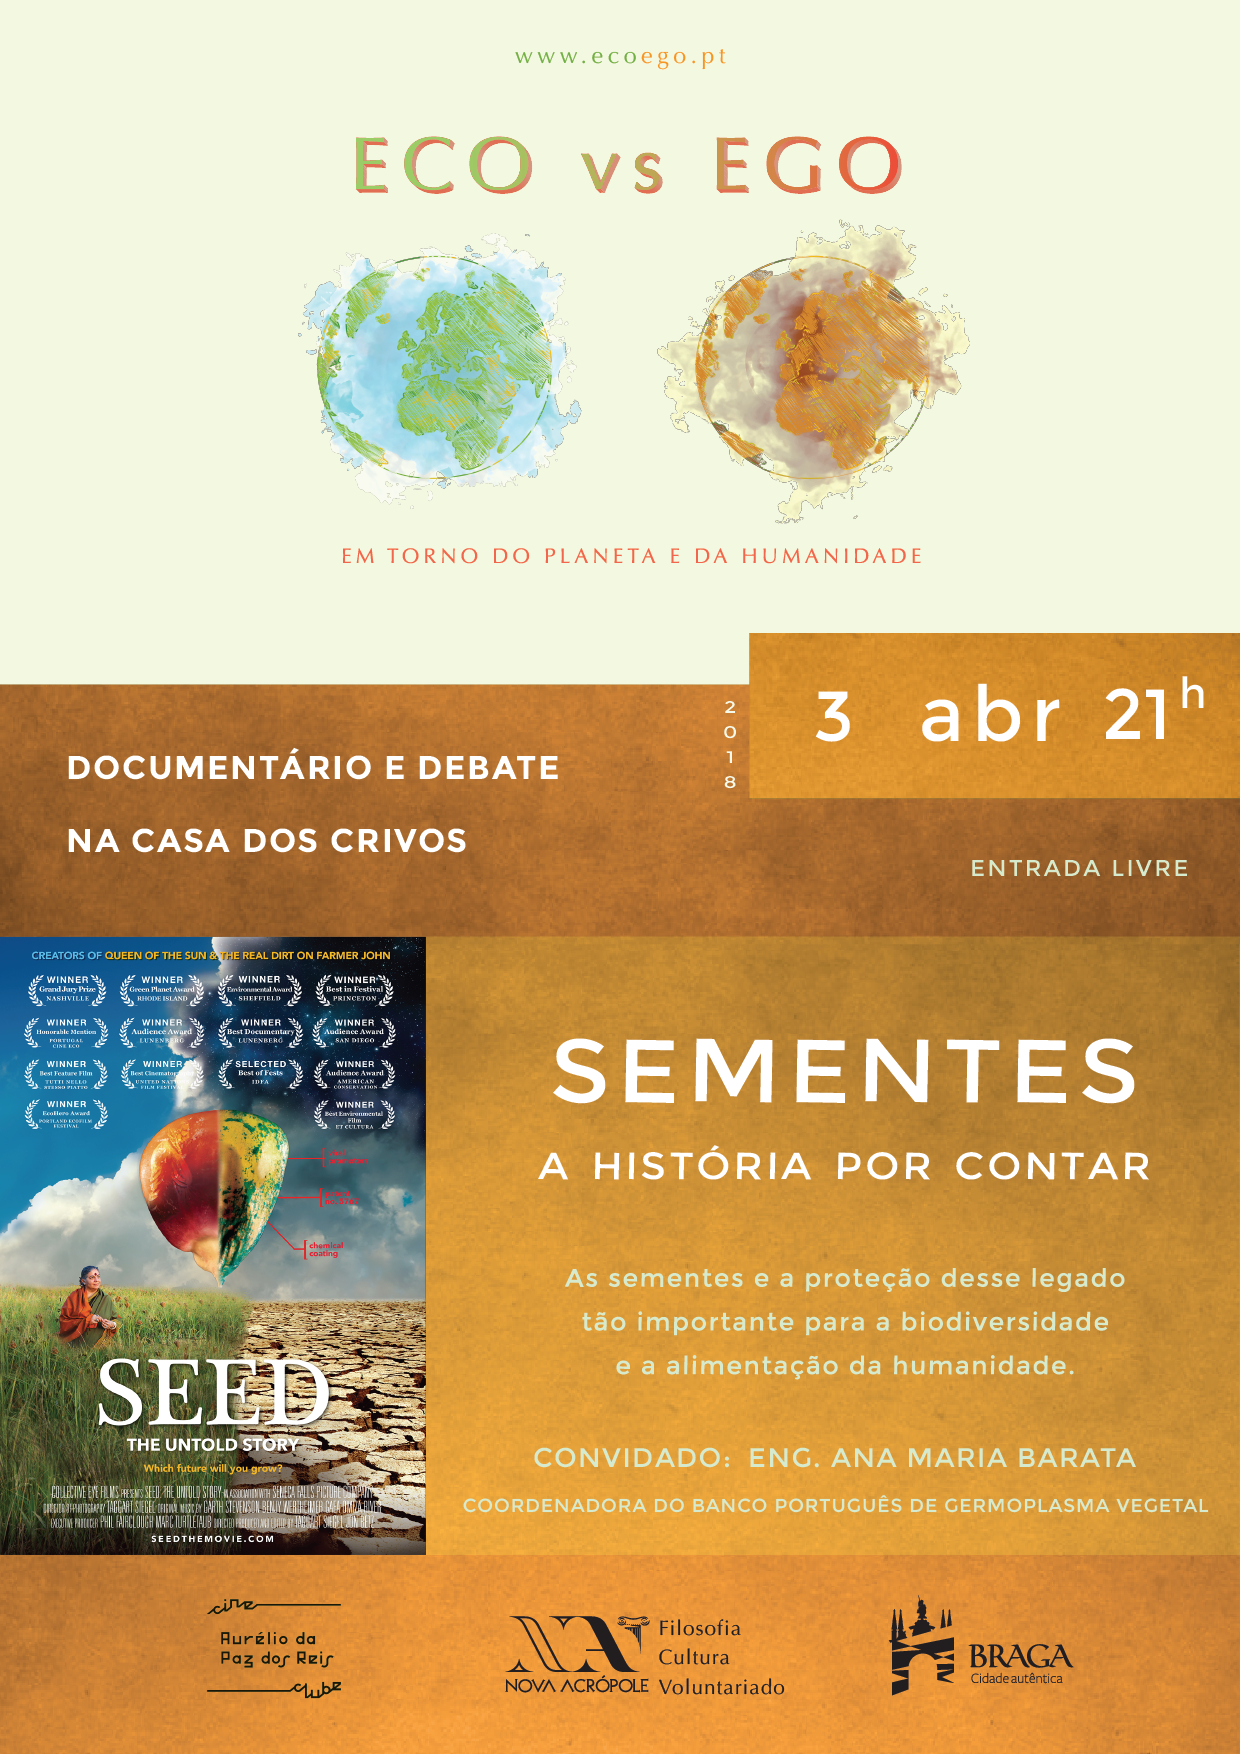 Eco vs Ego - Seed cartaz-01.png